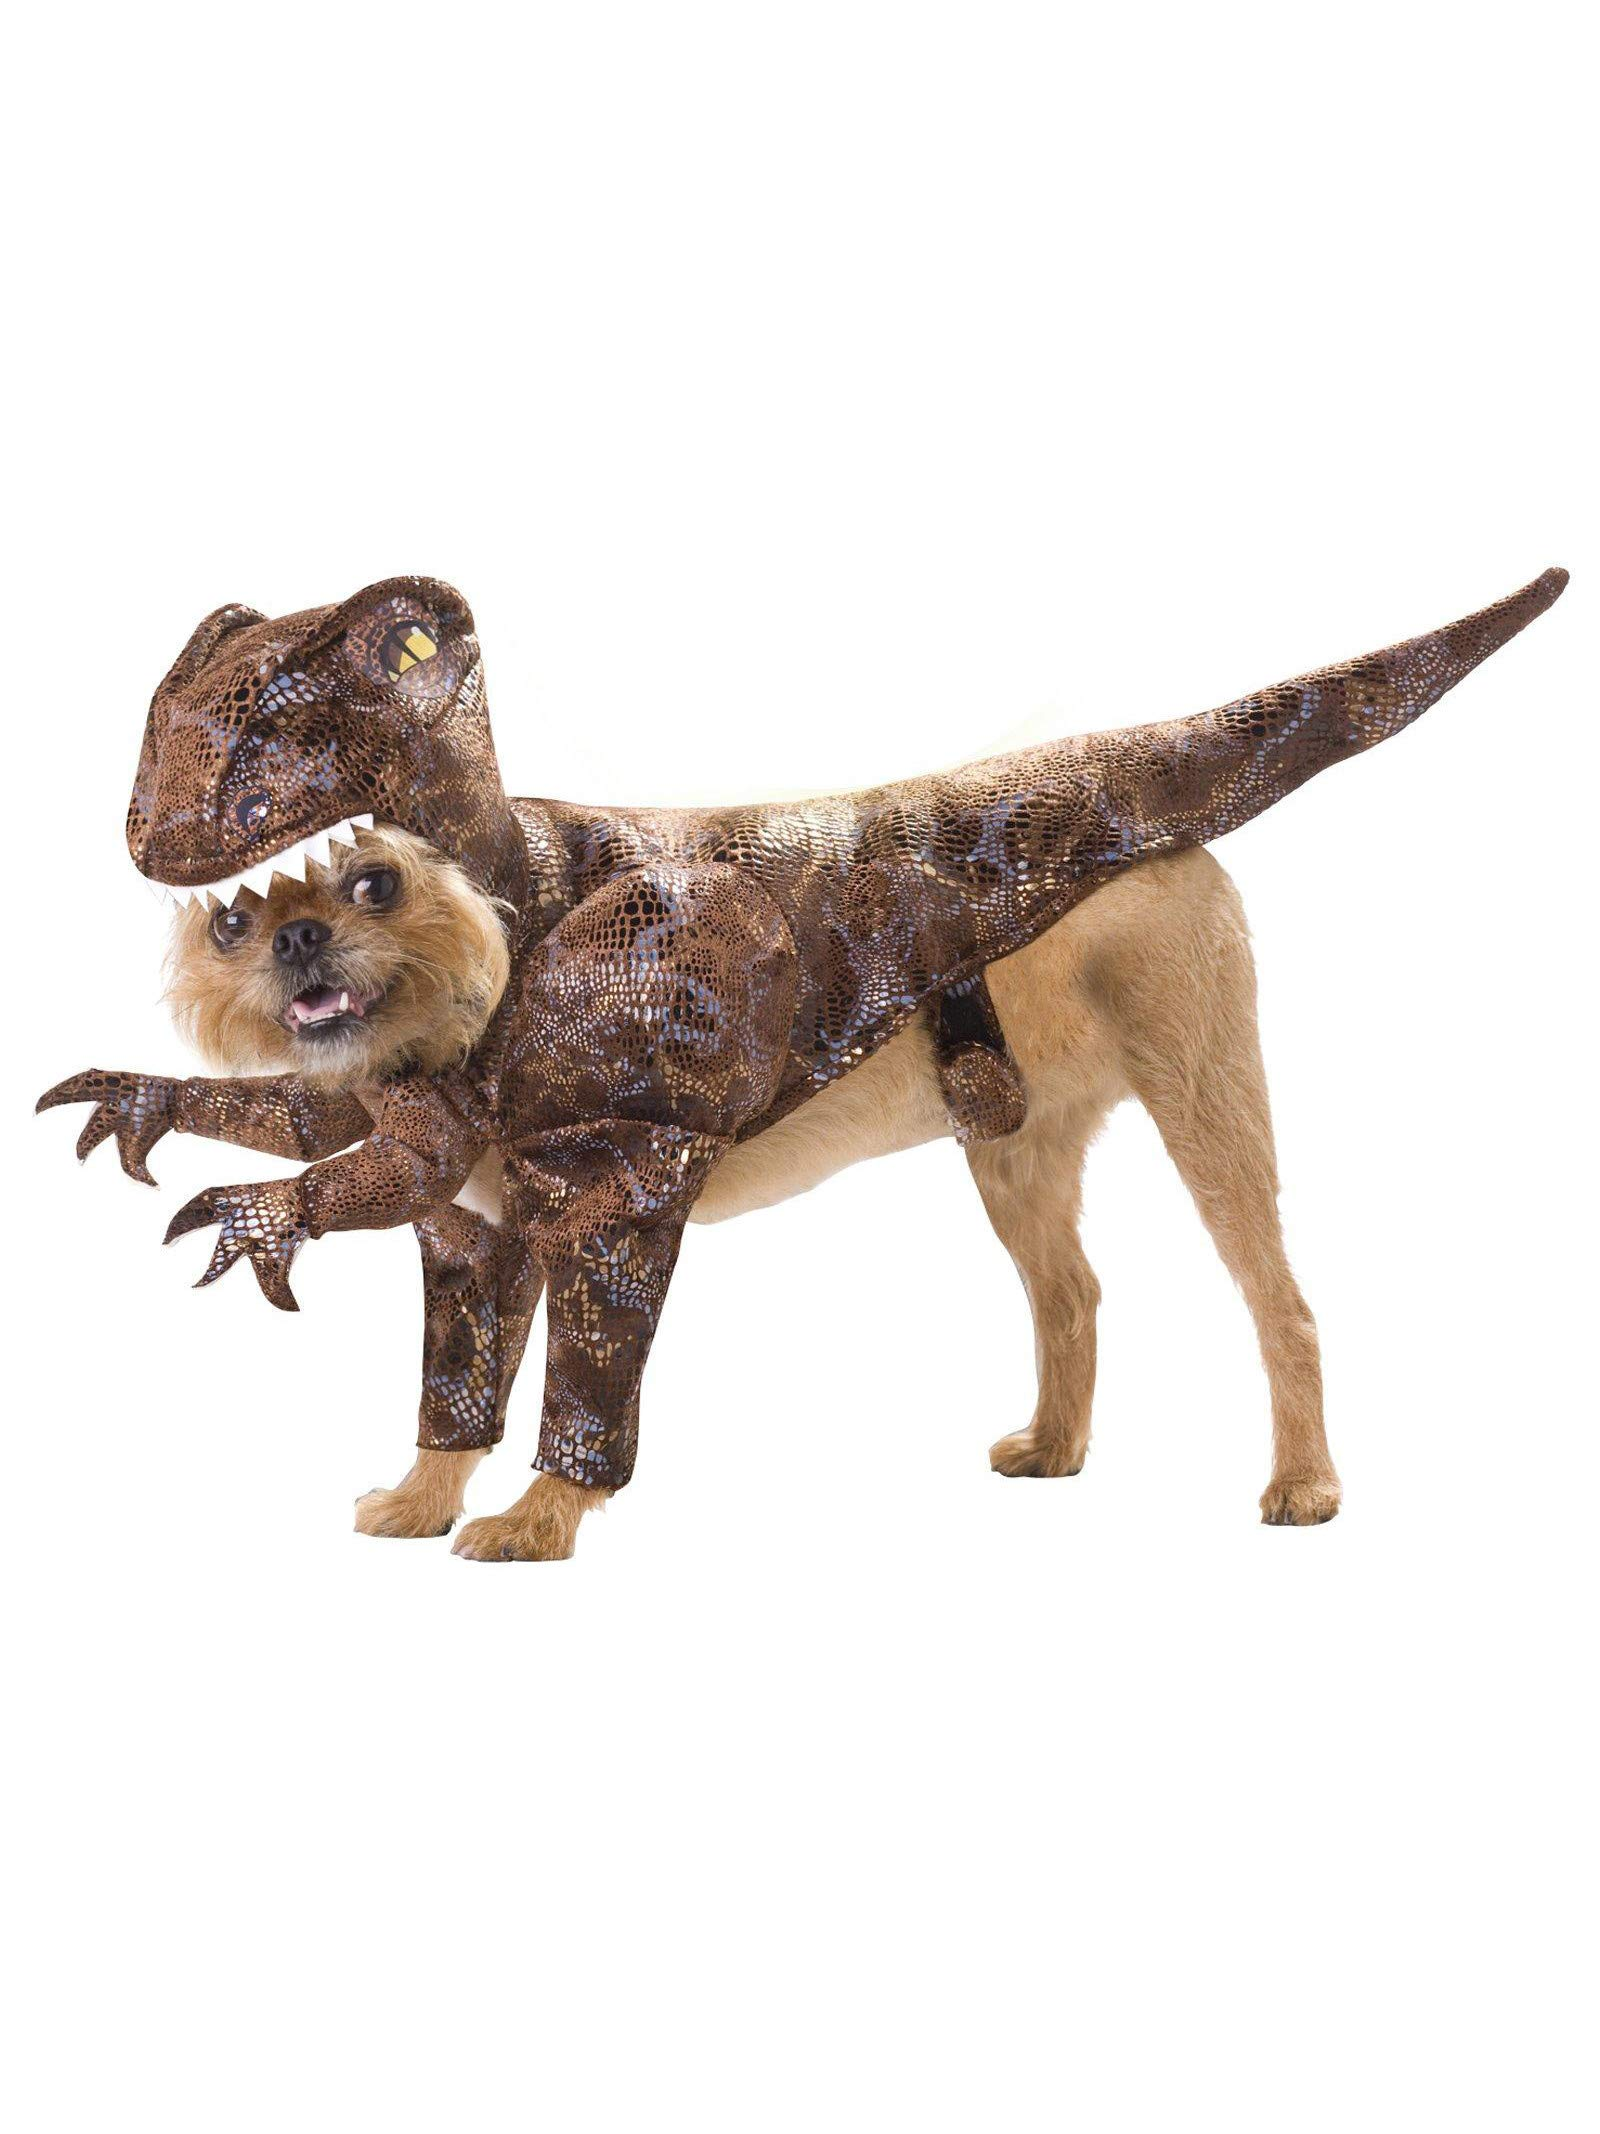 Animal Planet PET20109 Raptor Dog Costume, Small by Animal Planet